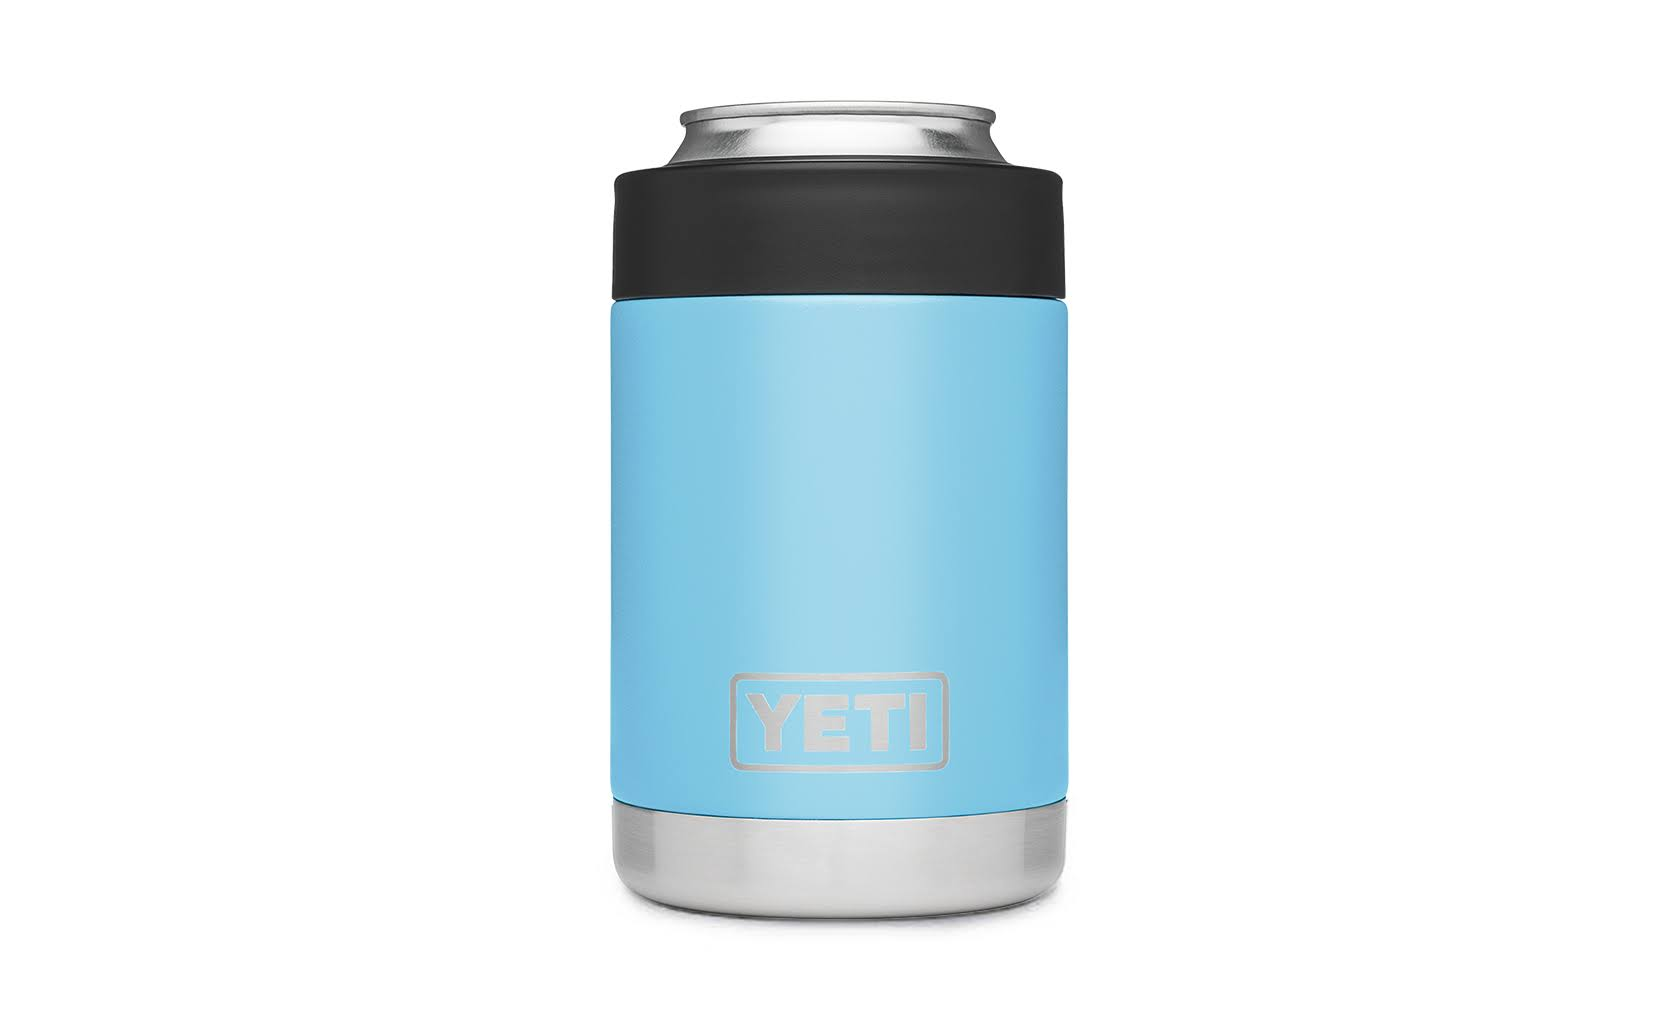 YETI Rambler Vacuum Insulated Stainless Steel Colster - Sky Blue